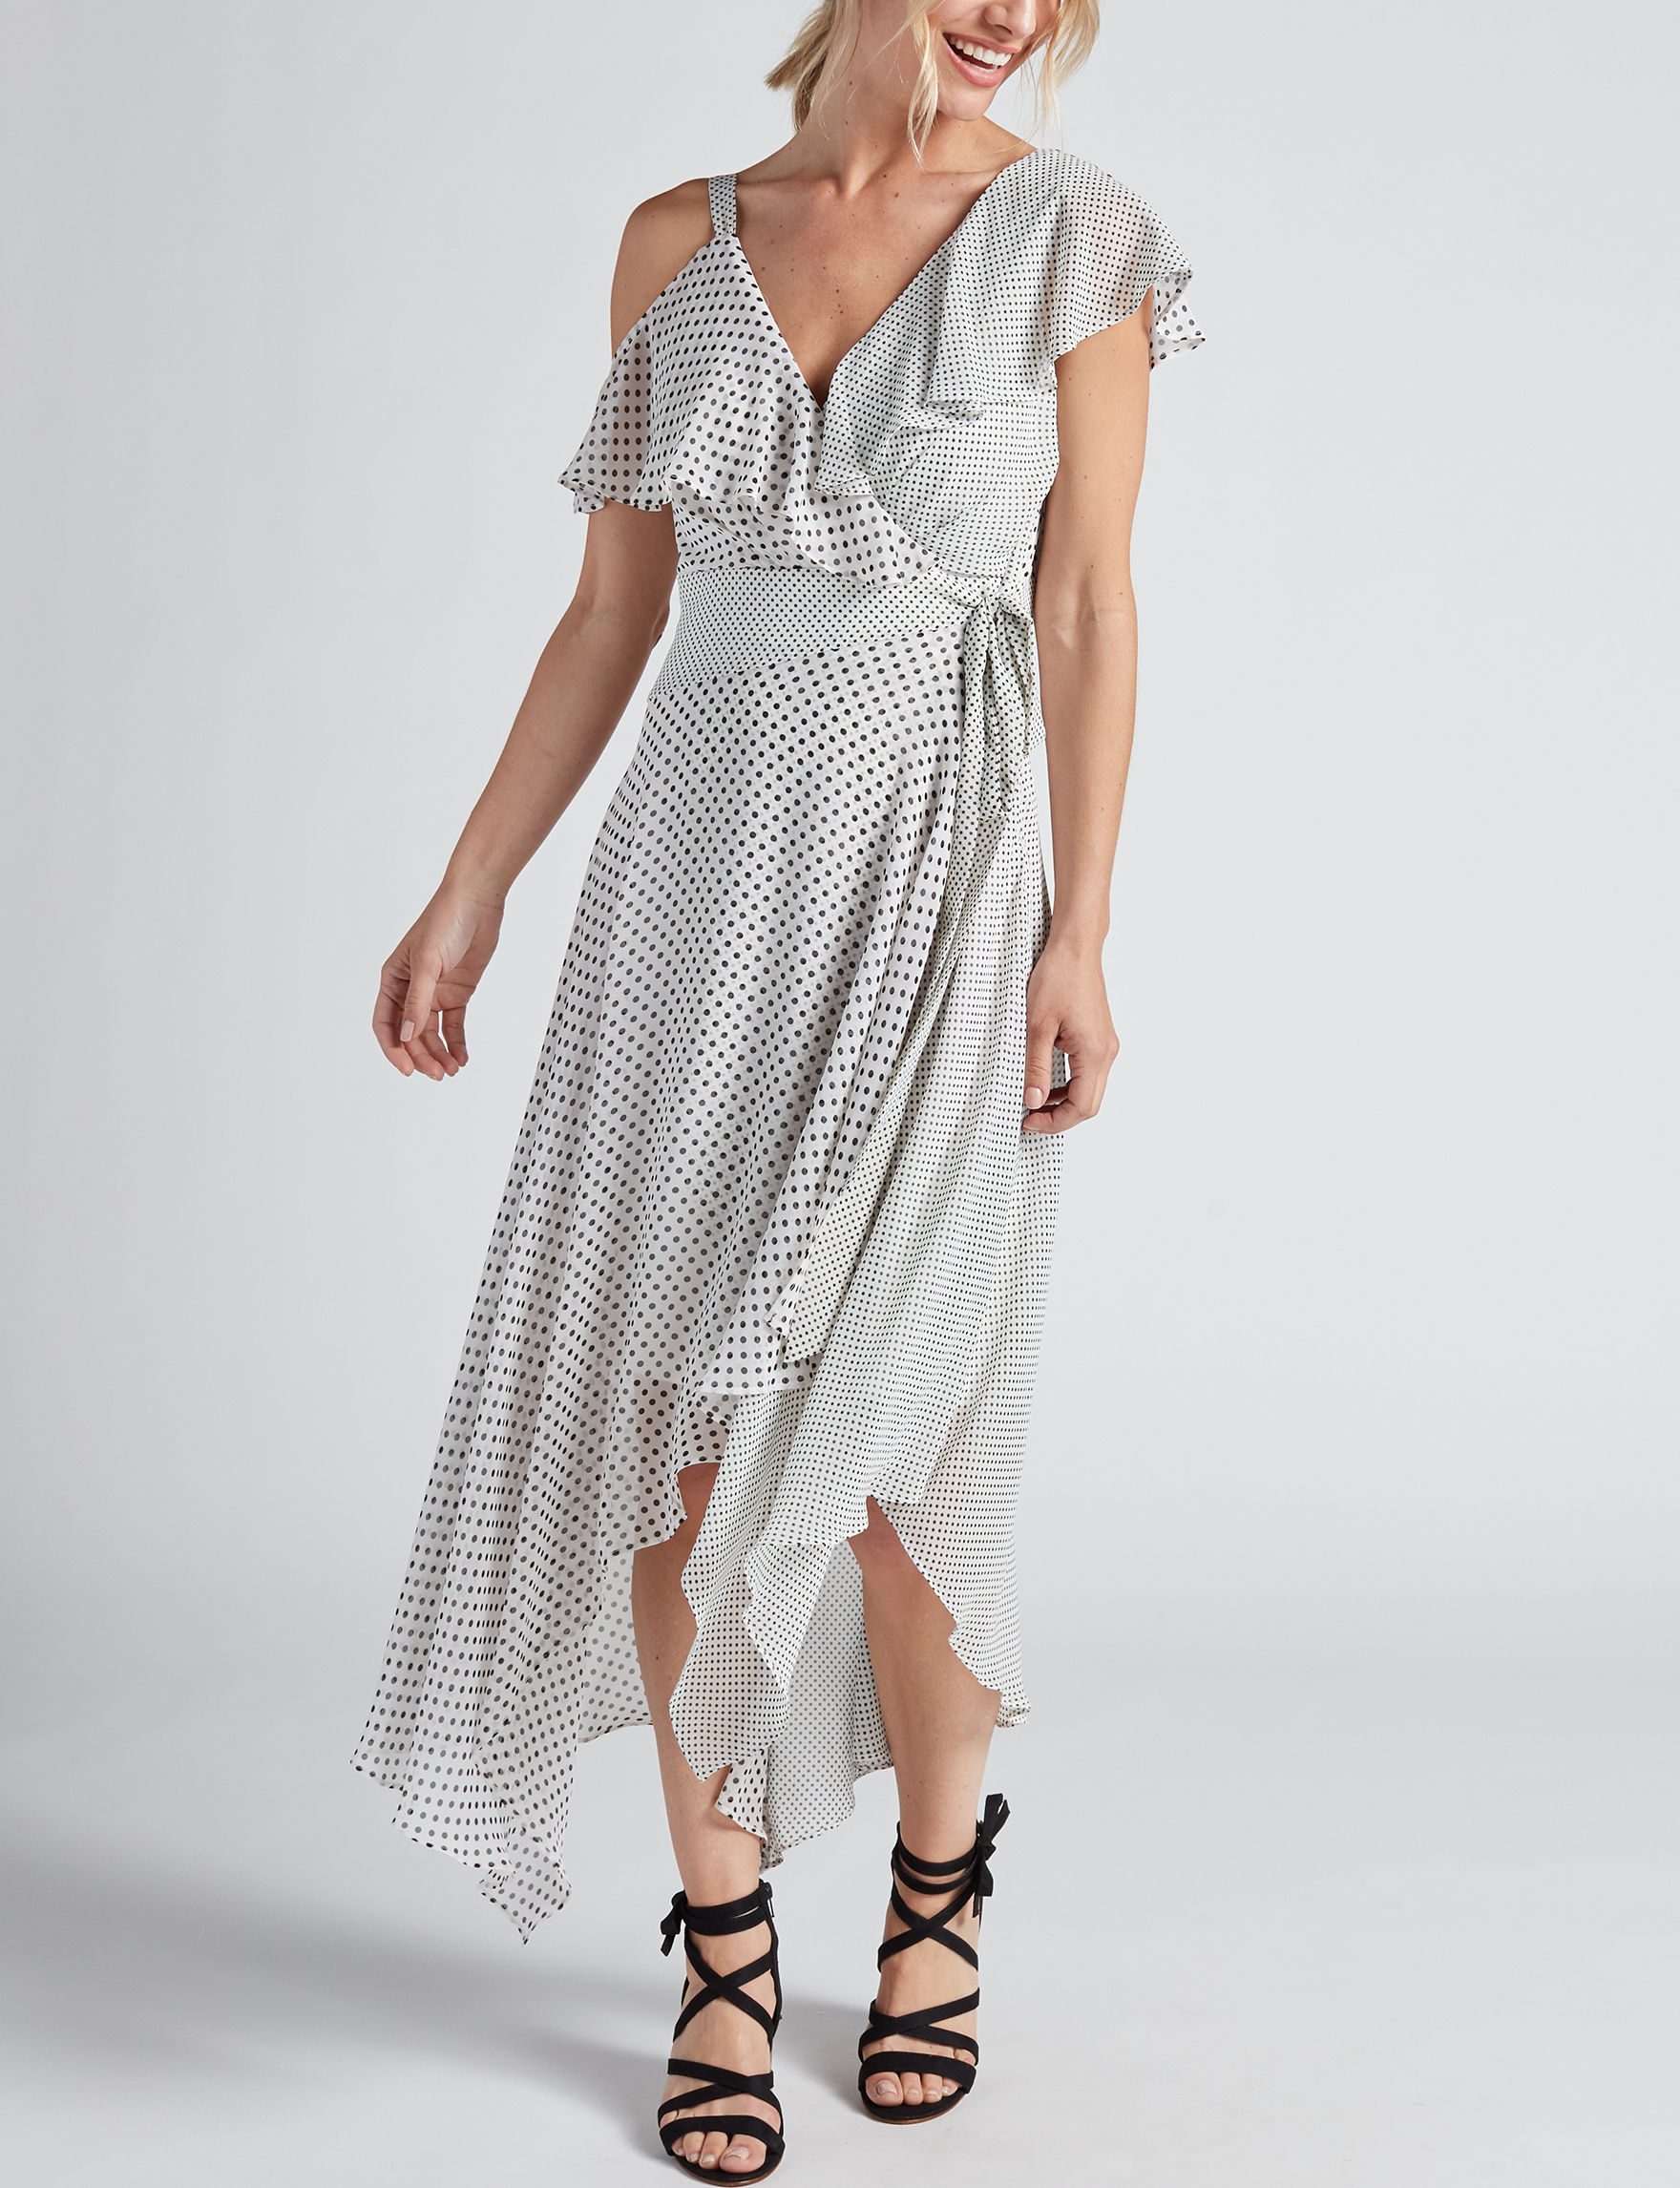 Sangria White Everyday & Casual A-line Dresses Fit & Flare Dresses